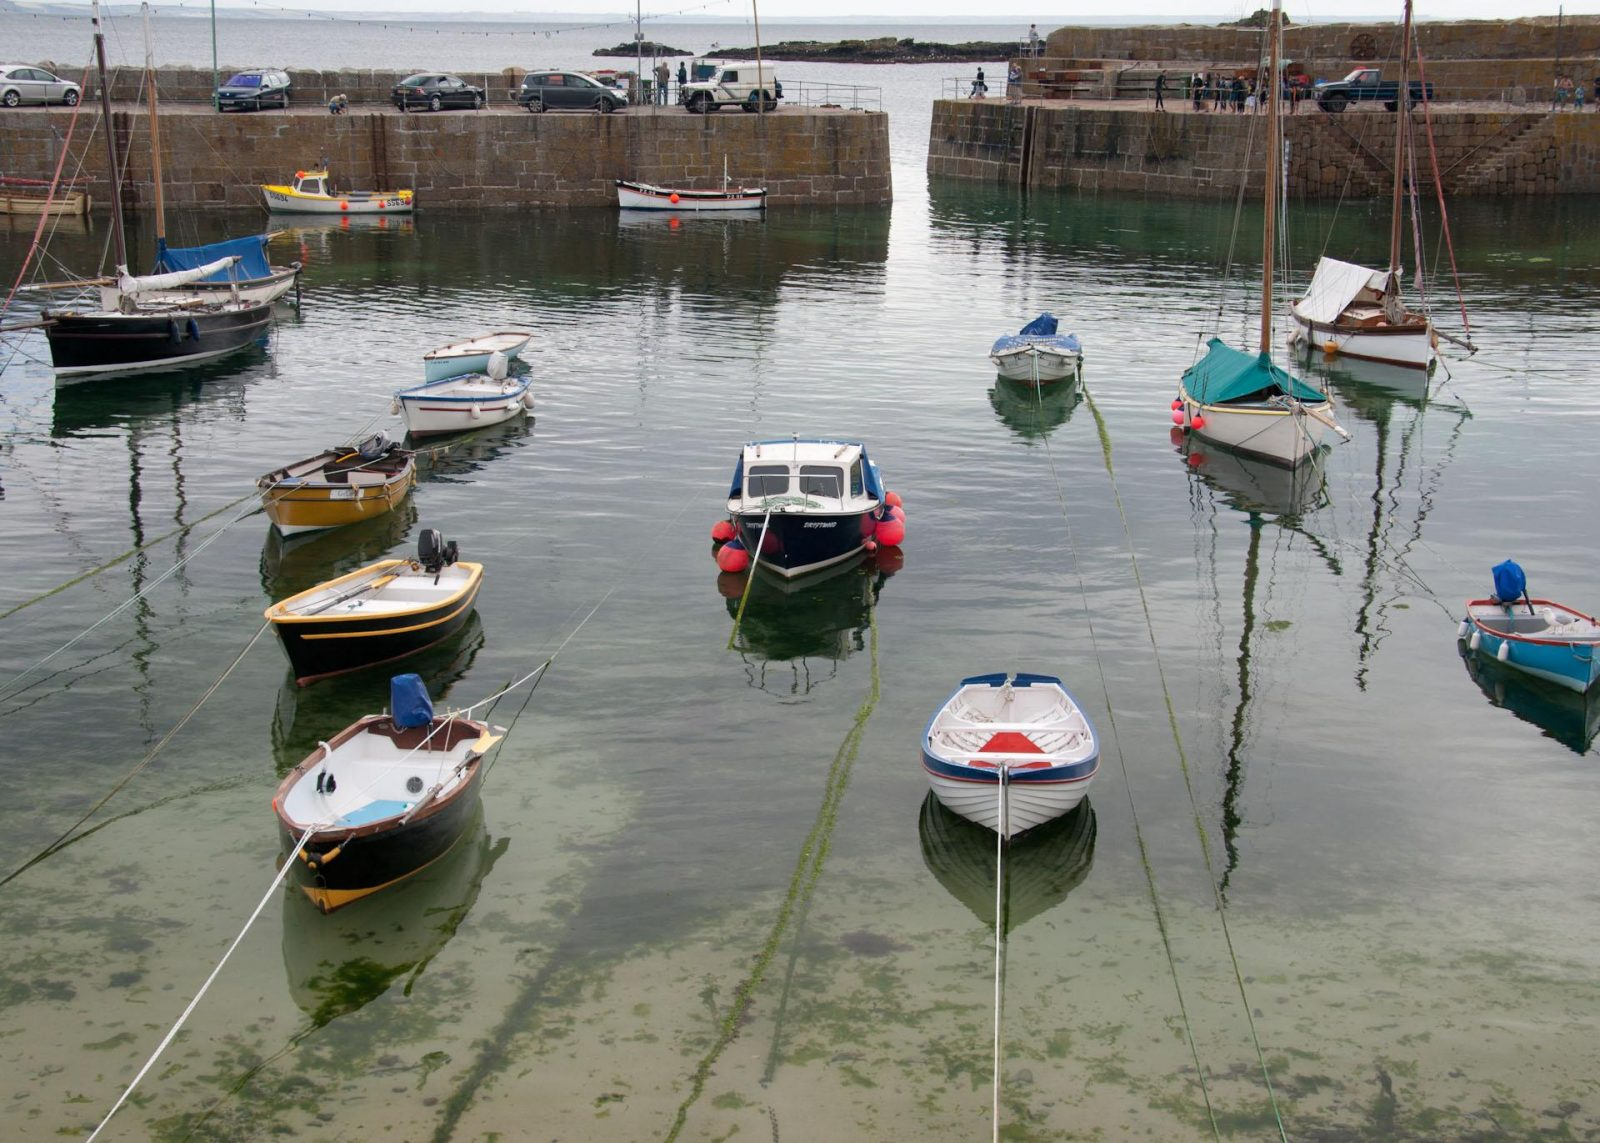 The harbour at Mousehole, Cornwall on Falcondale Life blog.